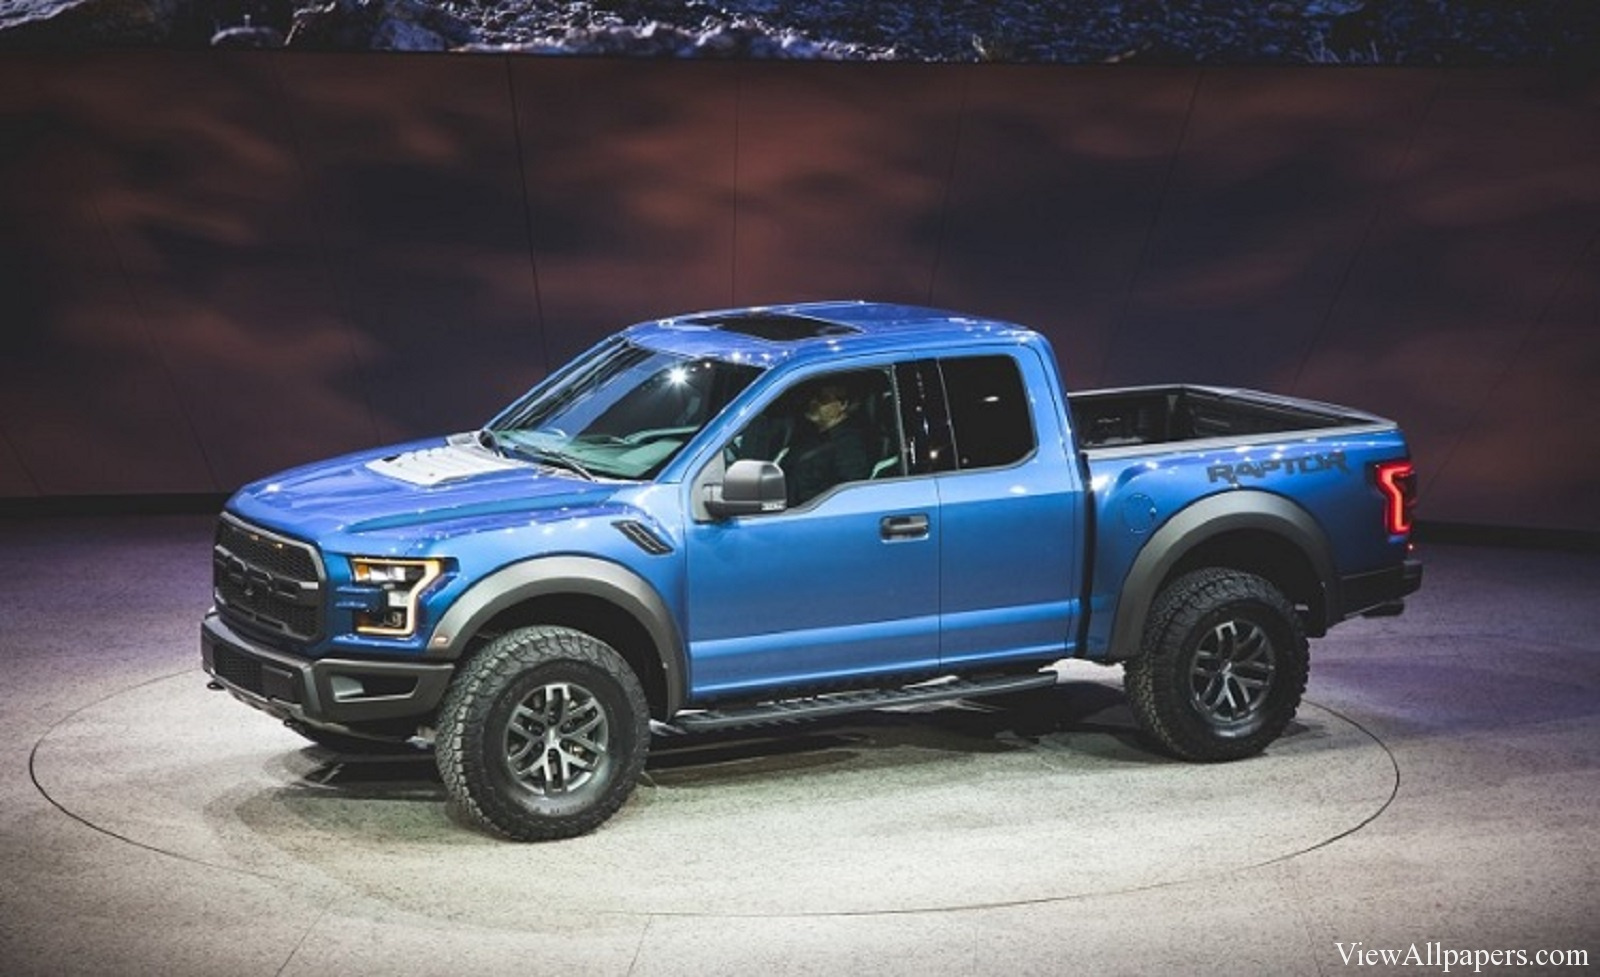 Ford Raptor Photos High Resolution Wallpaper download 2017 Ford 1600x977